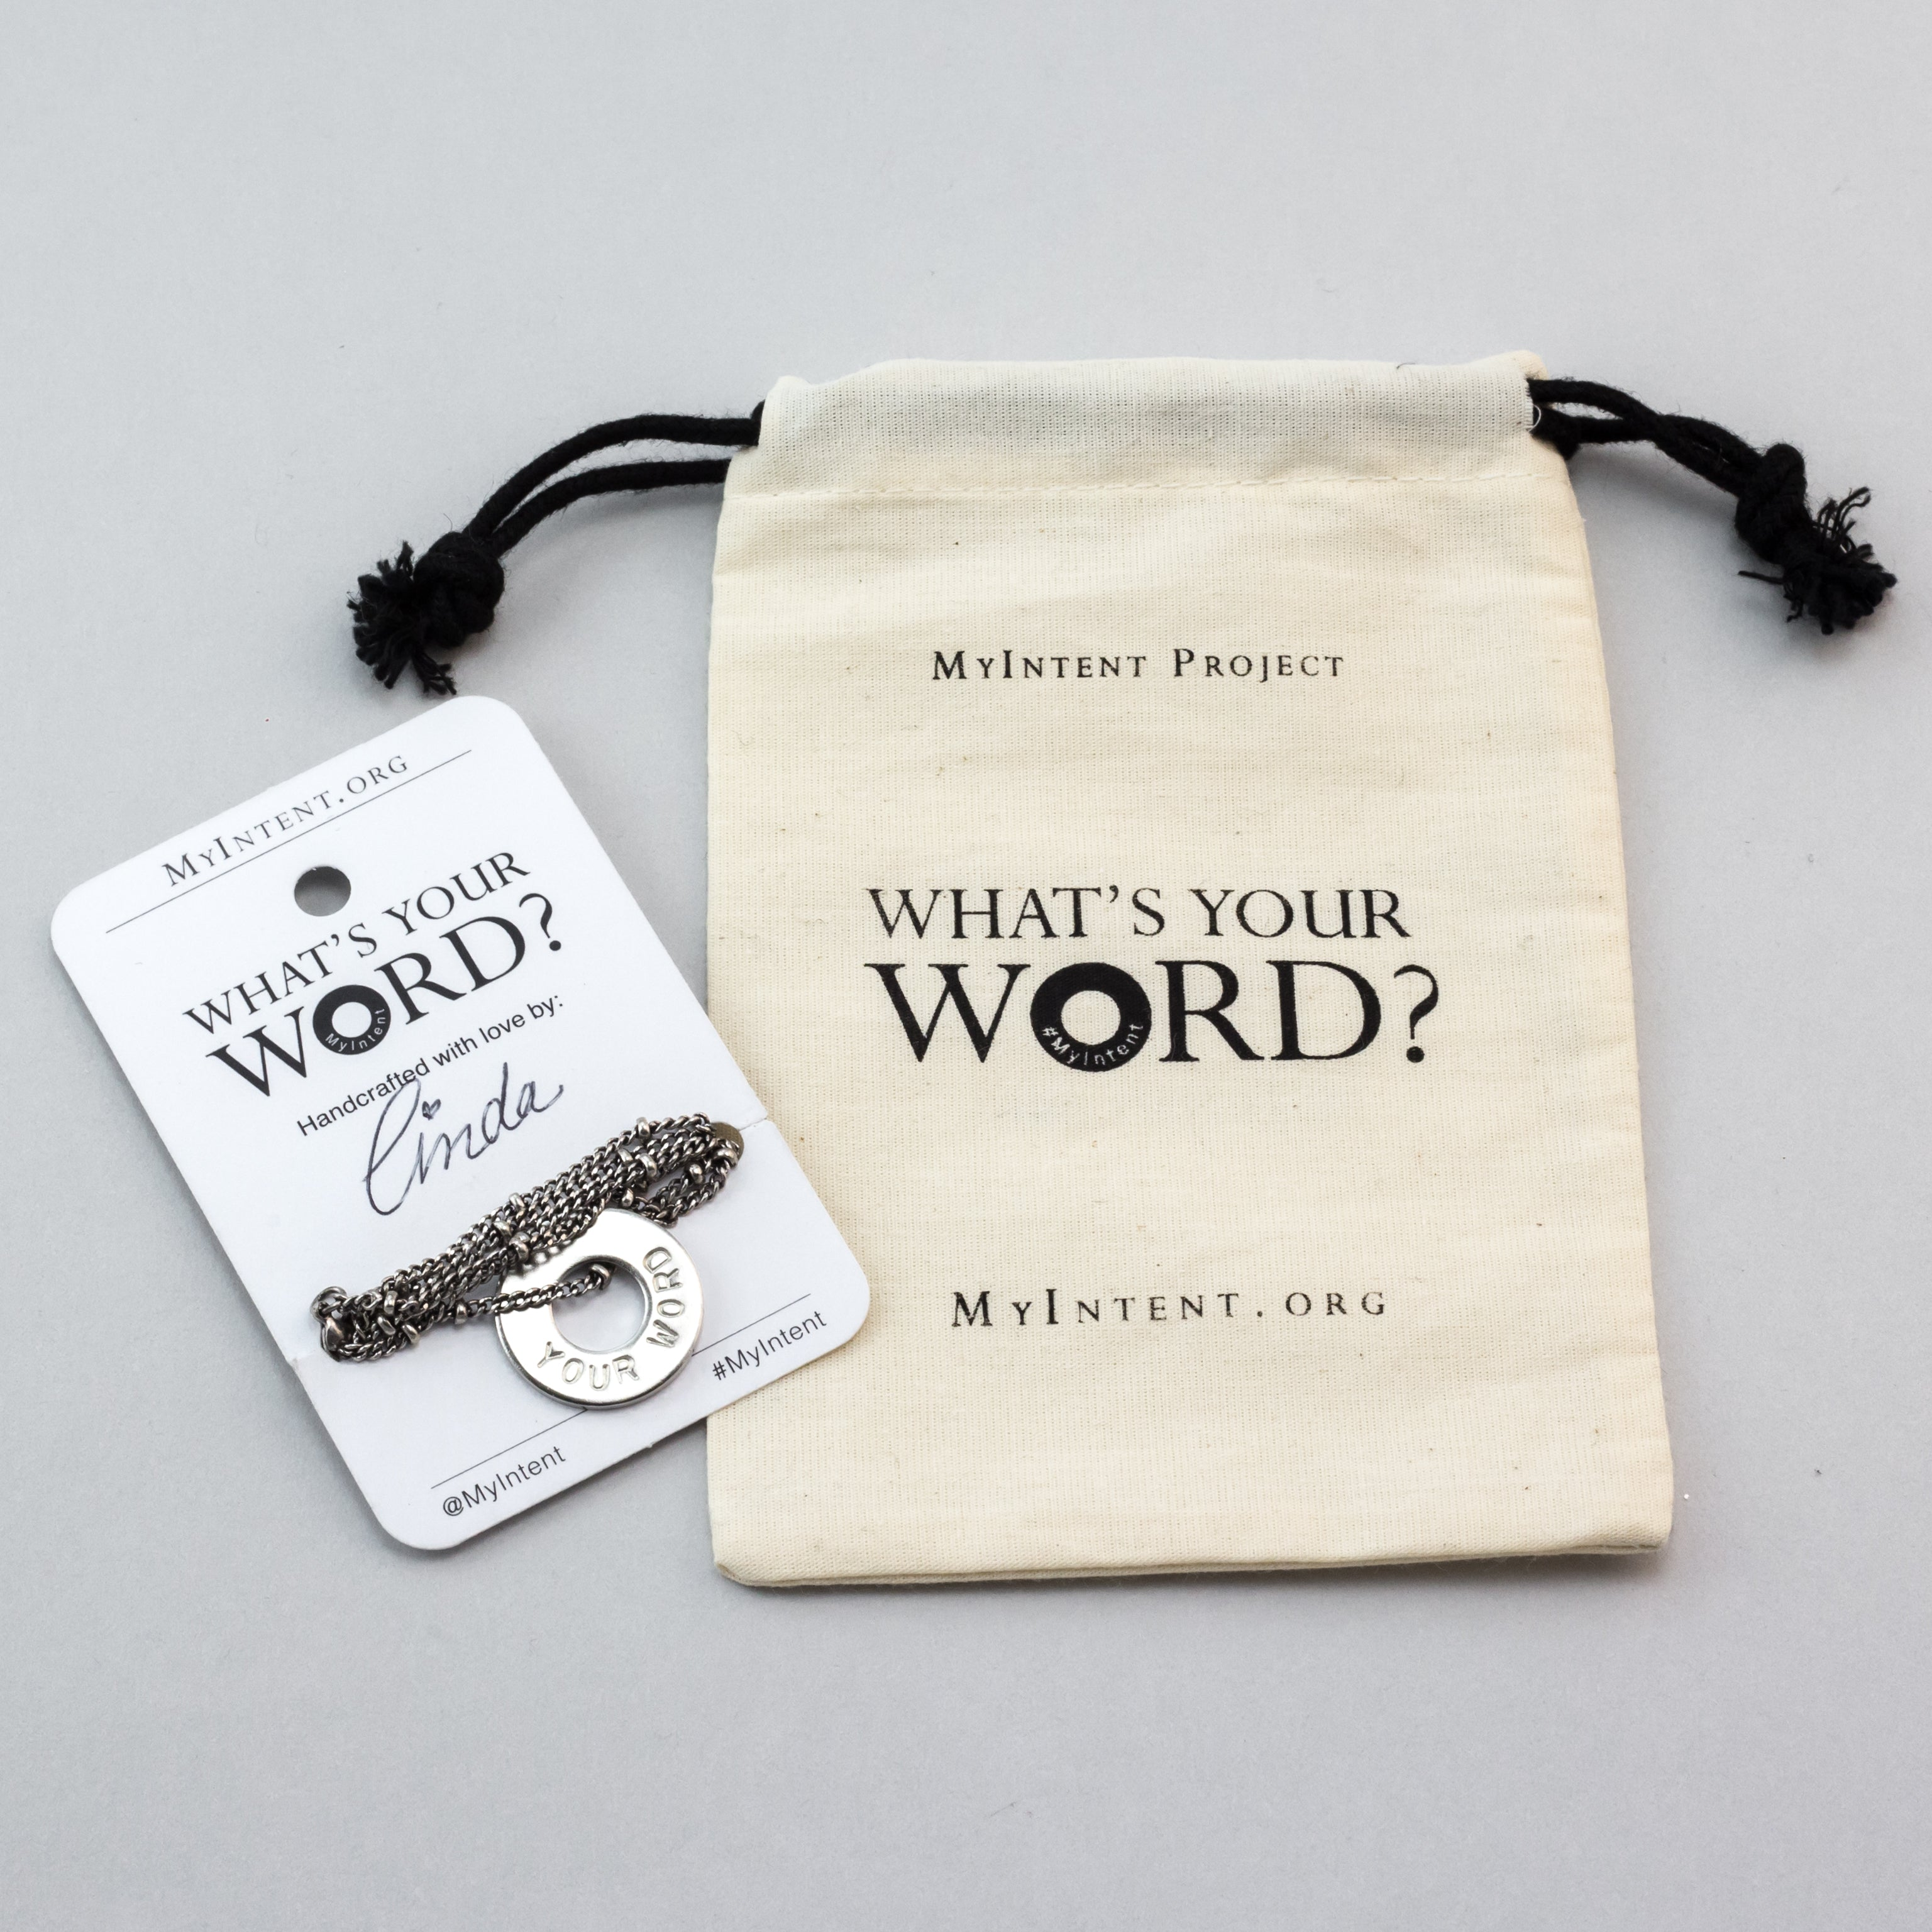 MyIntent Custom Bead Necklace arrives wrapped around a card with Packaging Bag